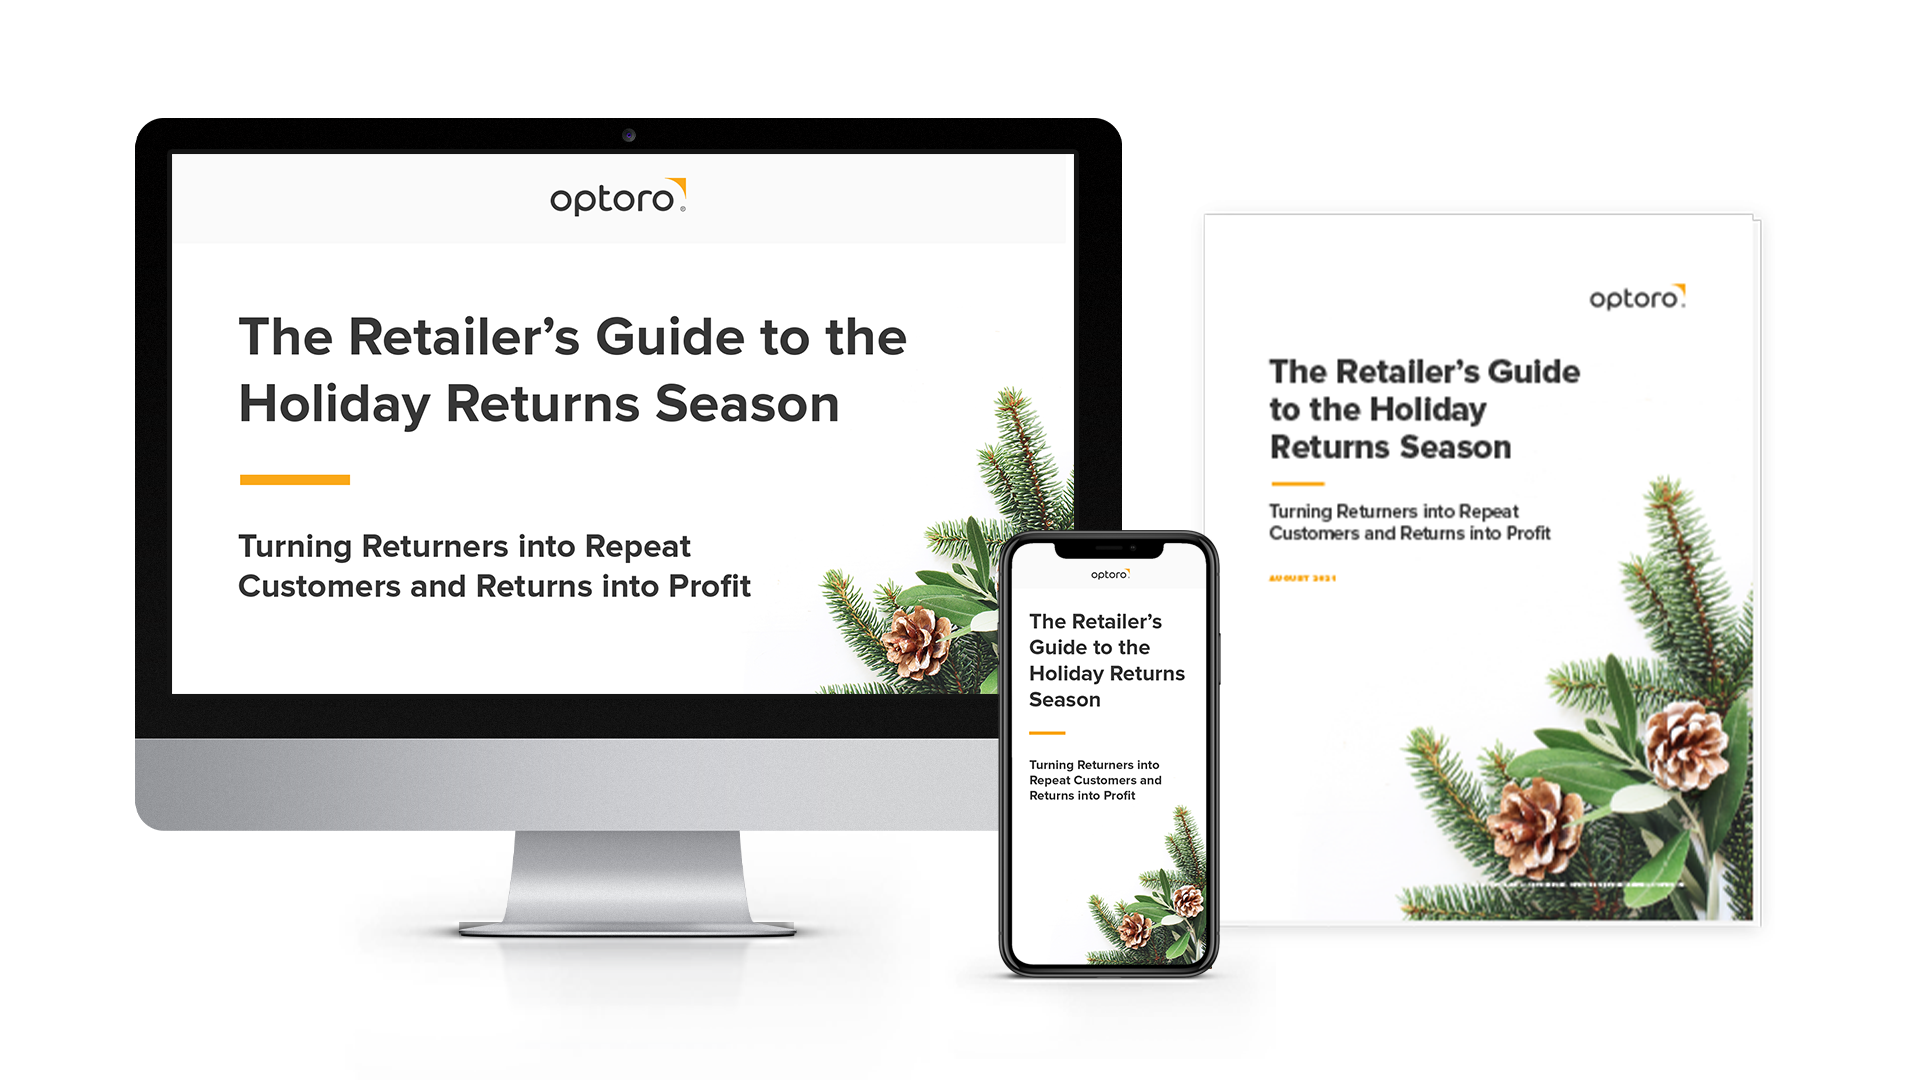 The Retailer's Guide to the Holiday Returns Season